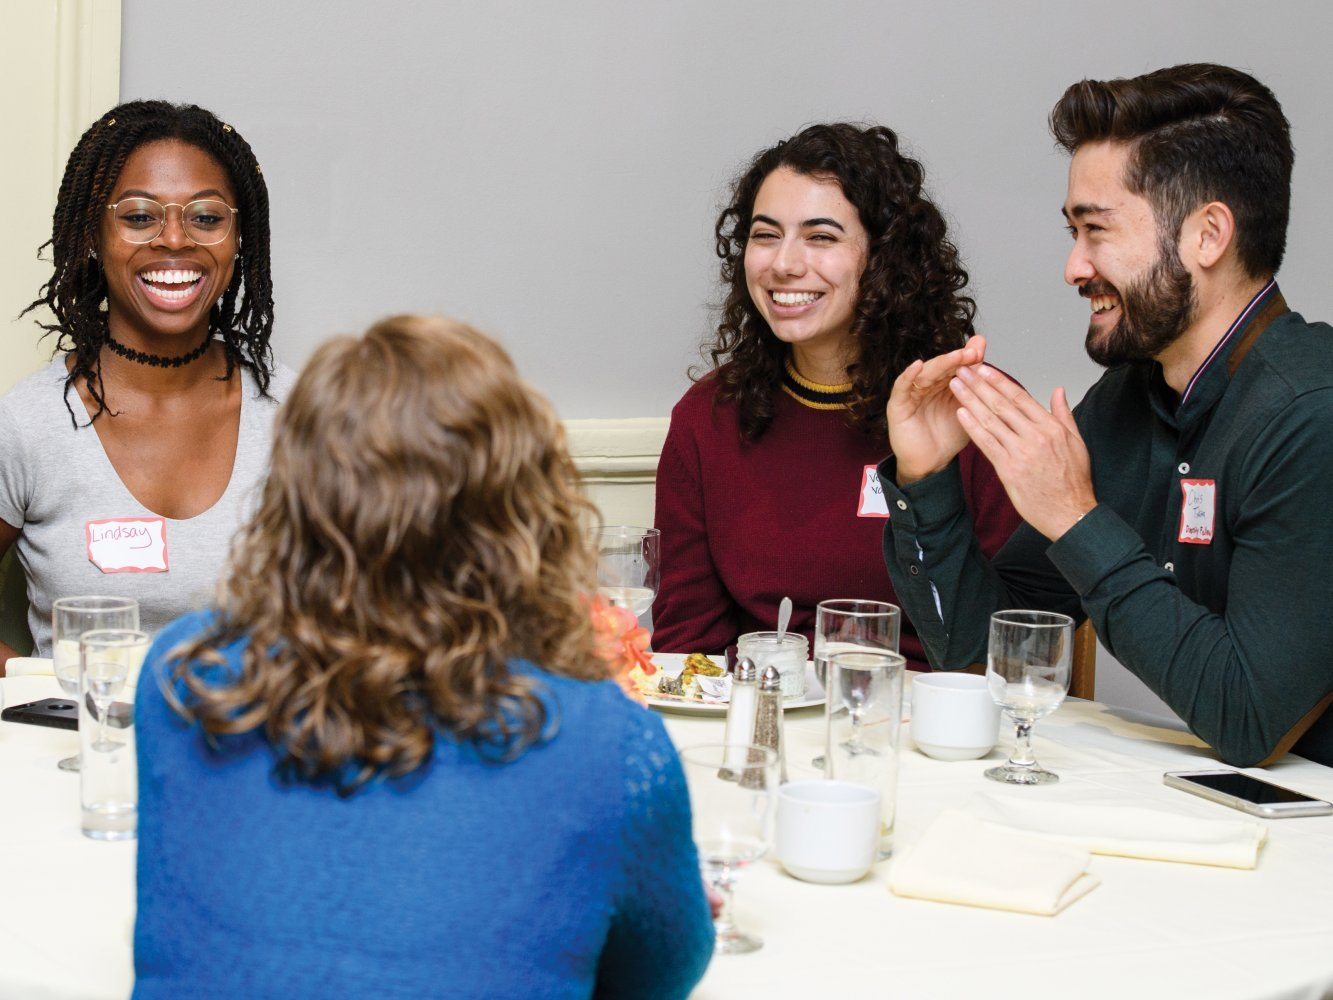 Group of diverse student dining together